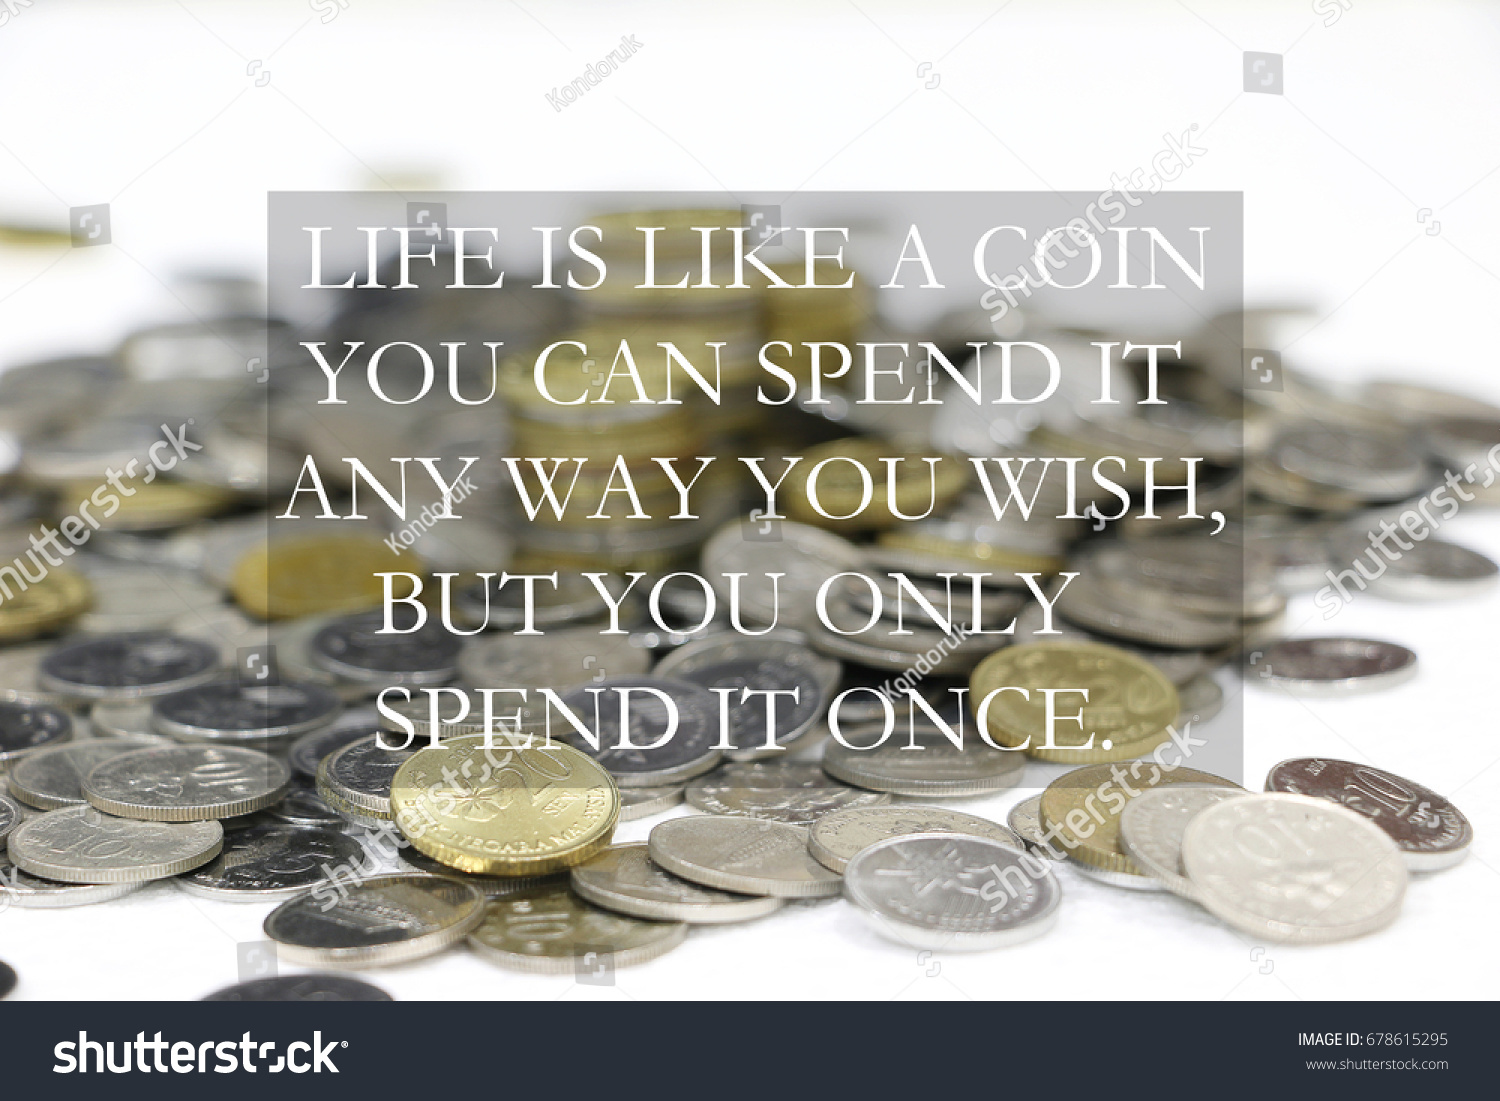 Blurry Stacked Coins Inspirational Quote Life Stock Photo Edit Now